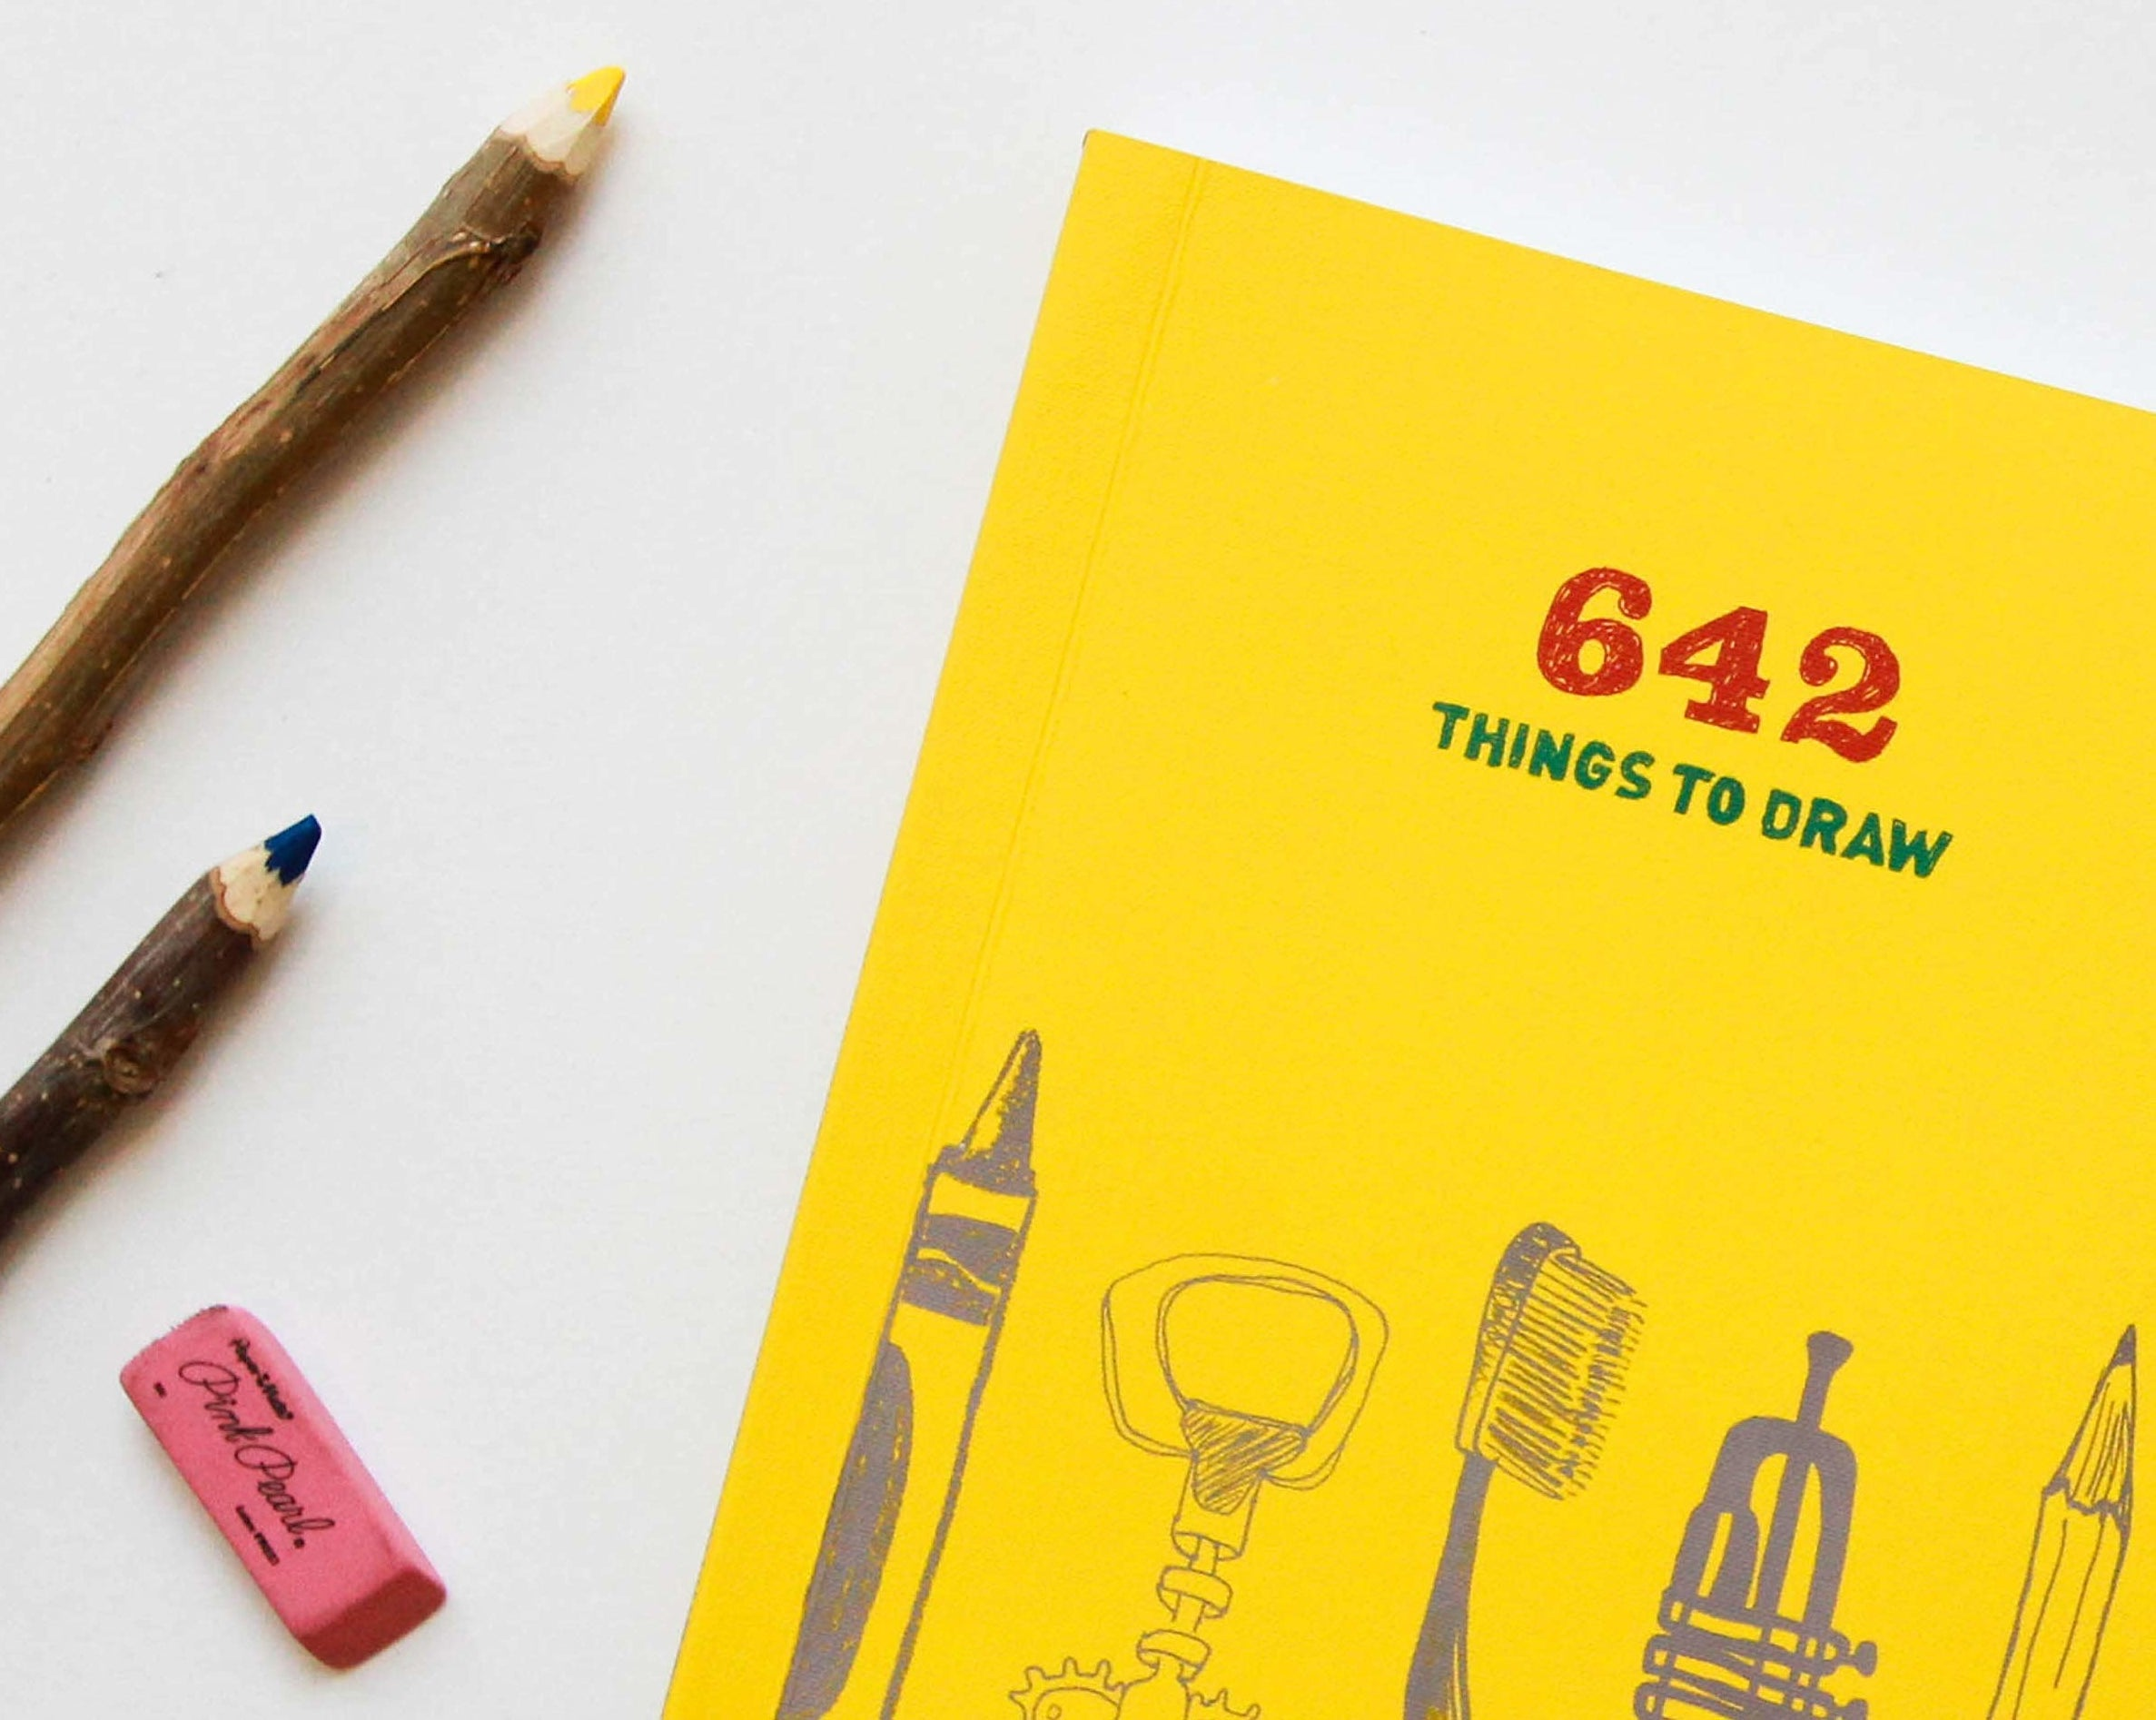 book that says 642 things to draw